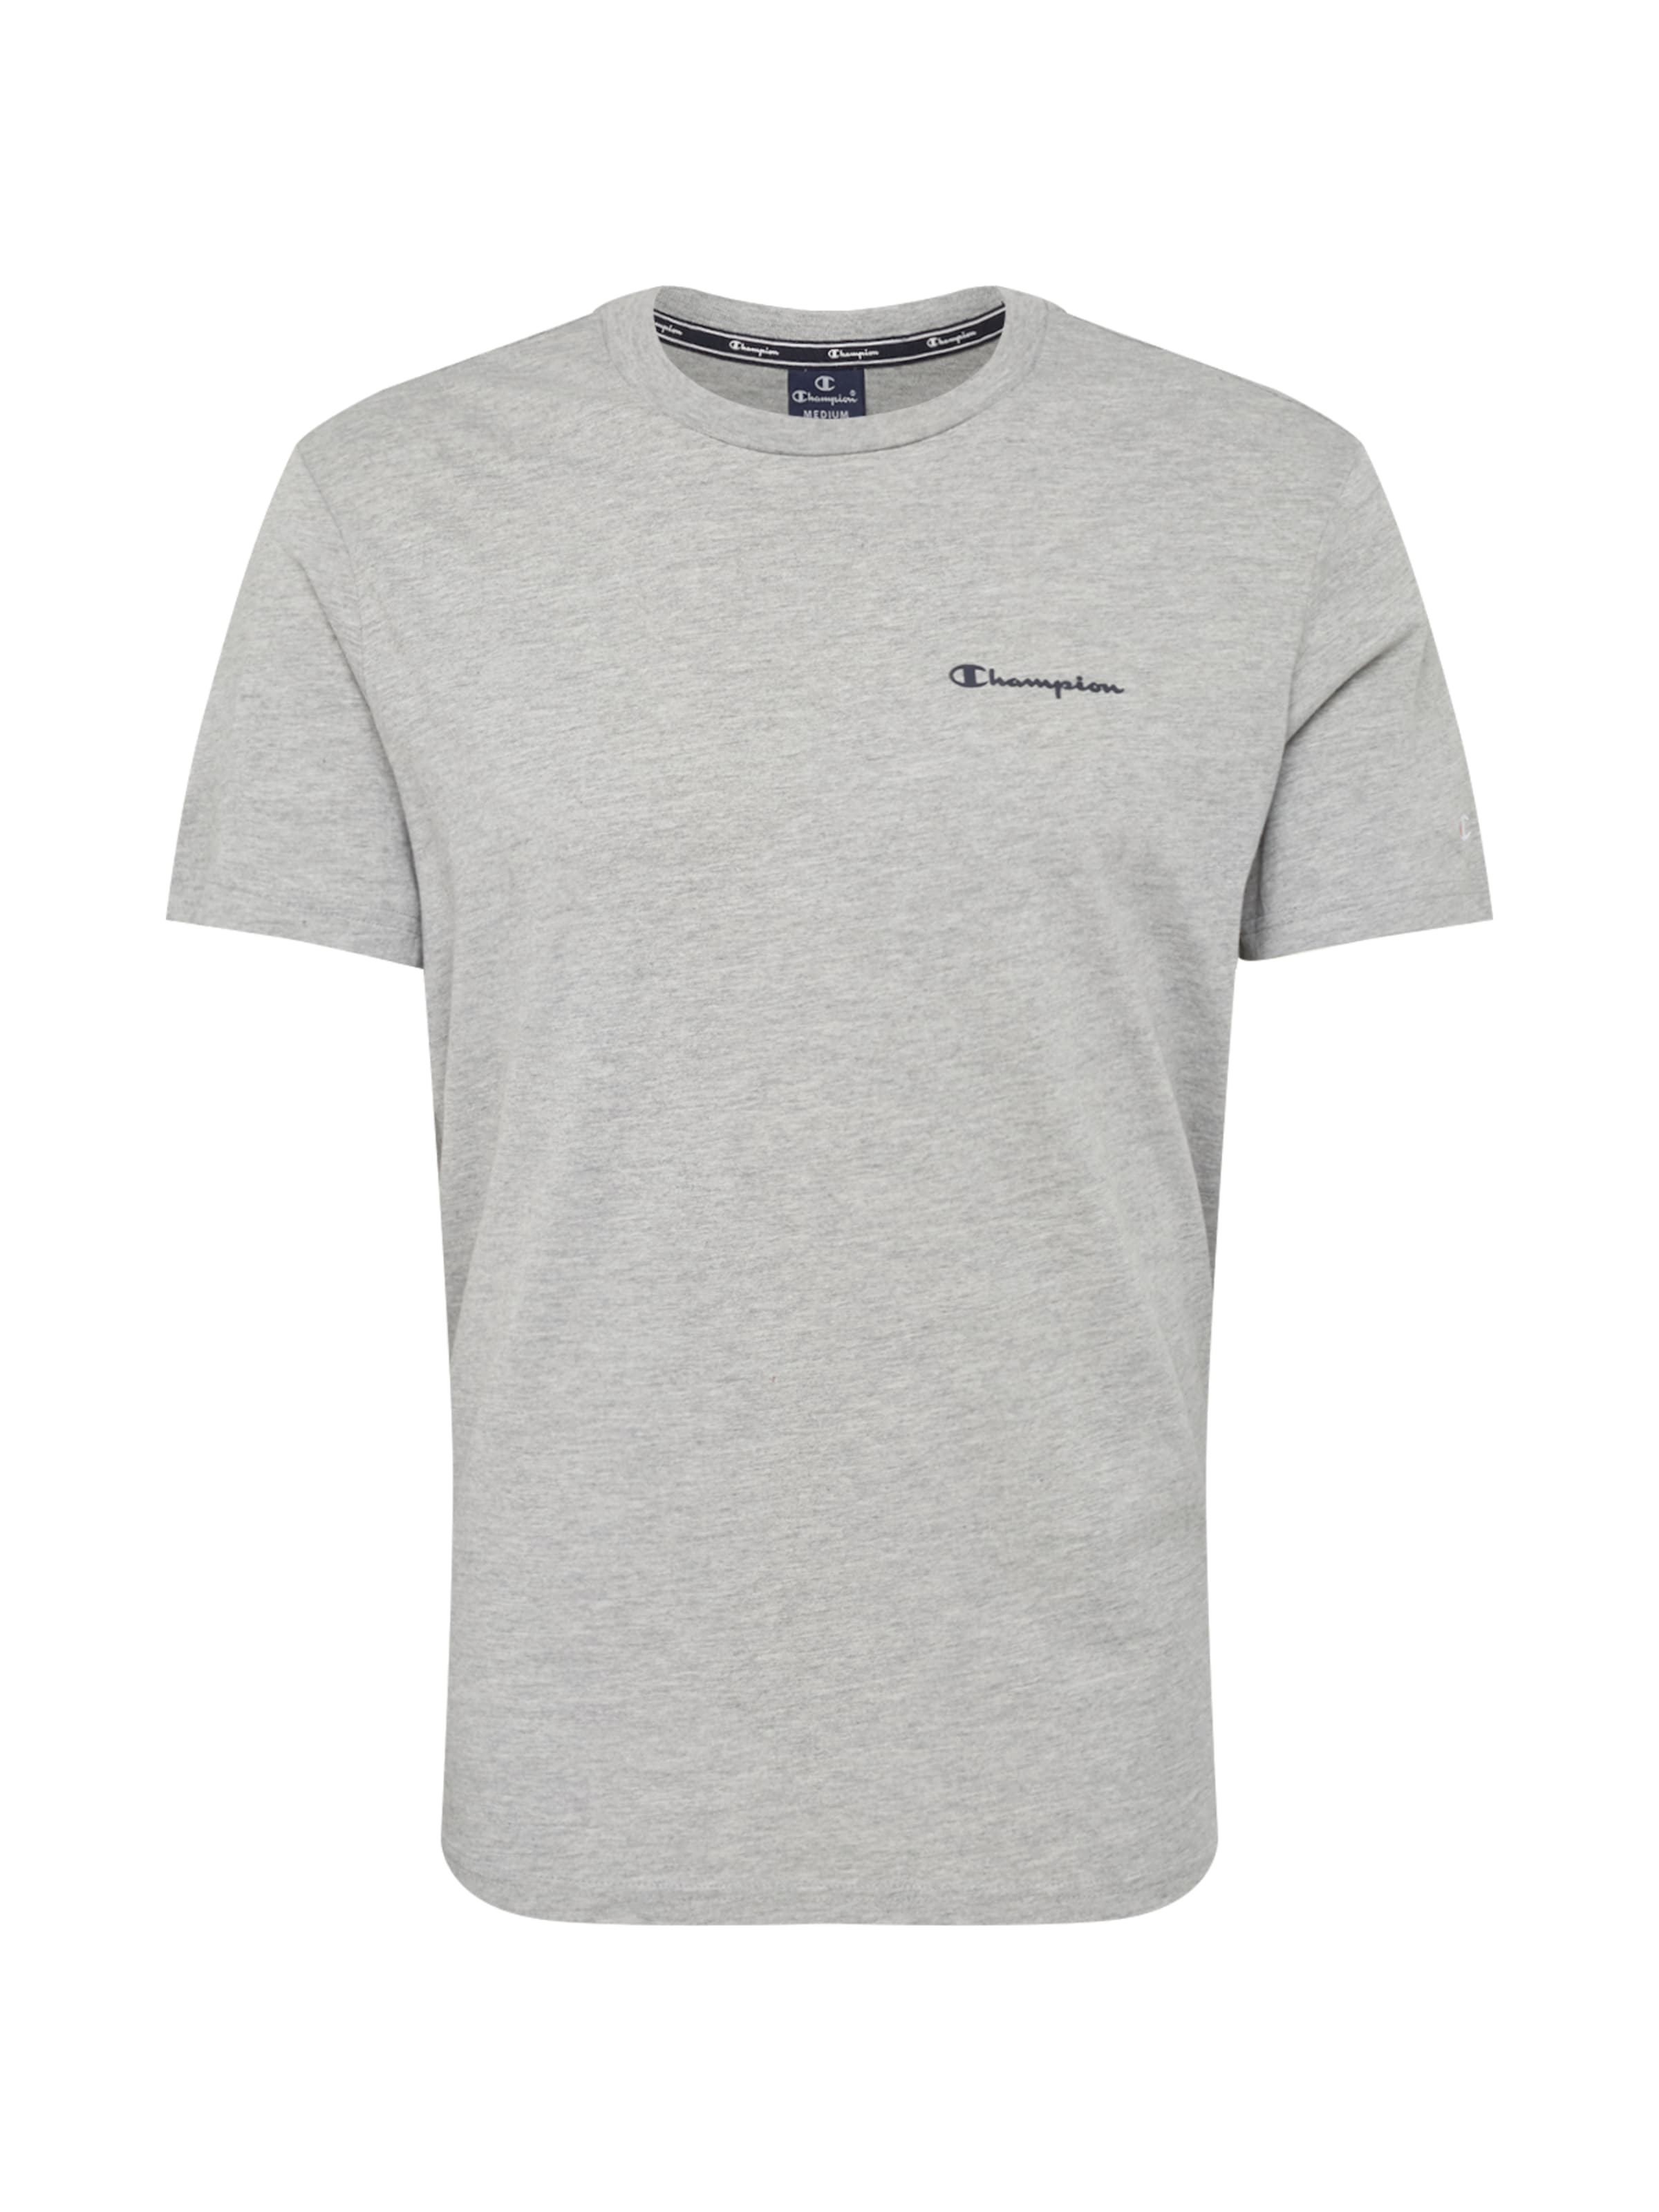 Athletic GrauSchwarz Apparel Authentic T shirt In Champion 8Pkw0On